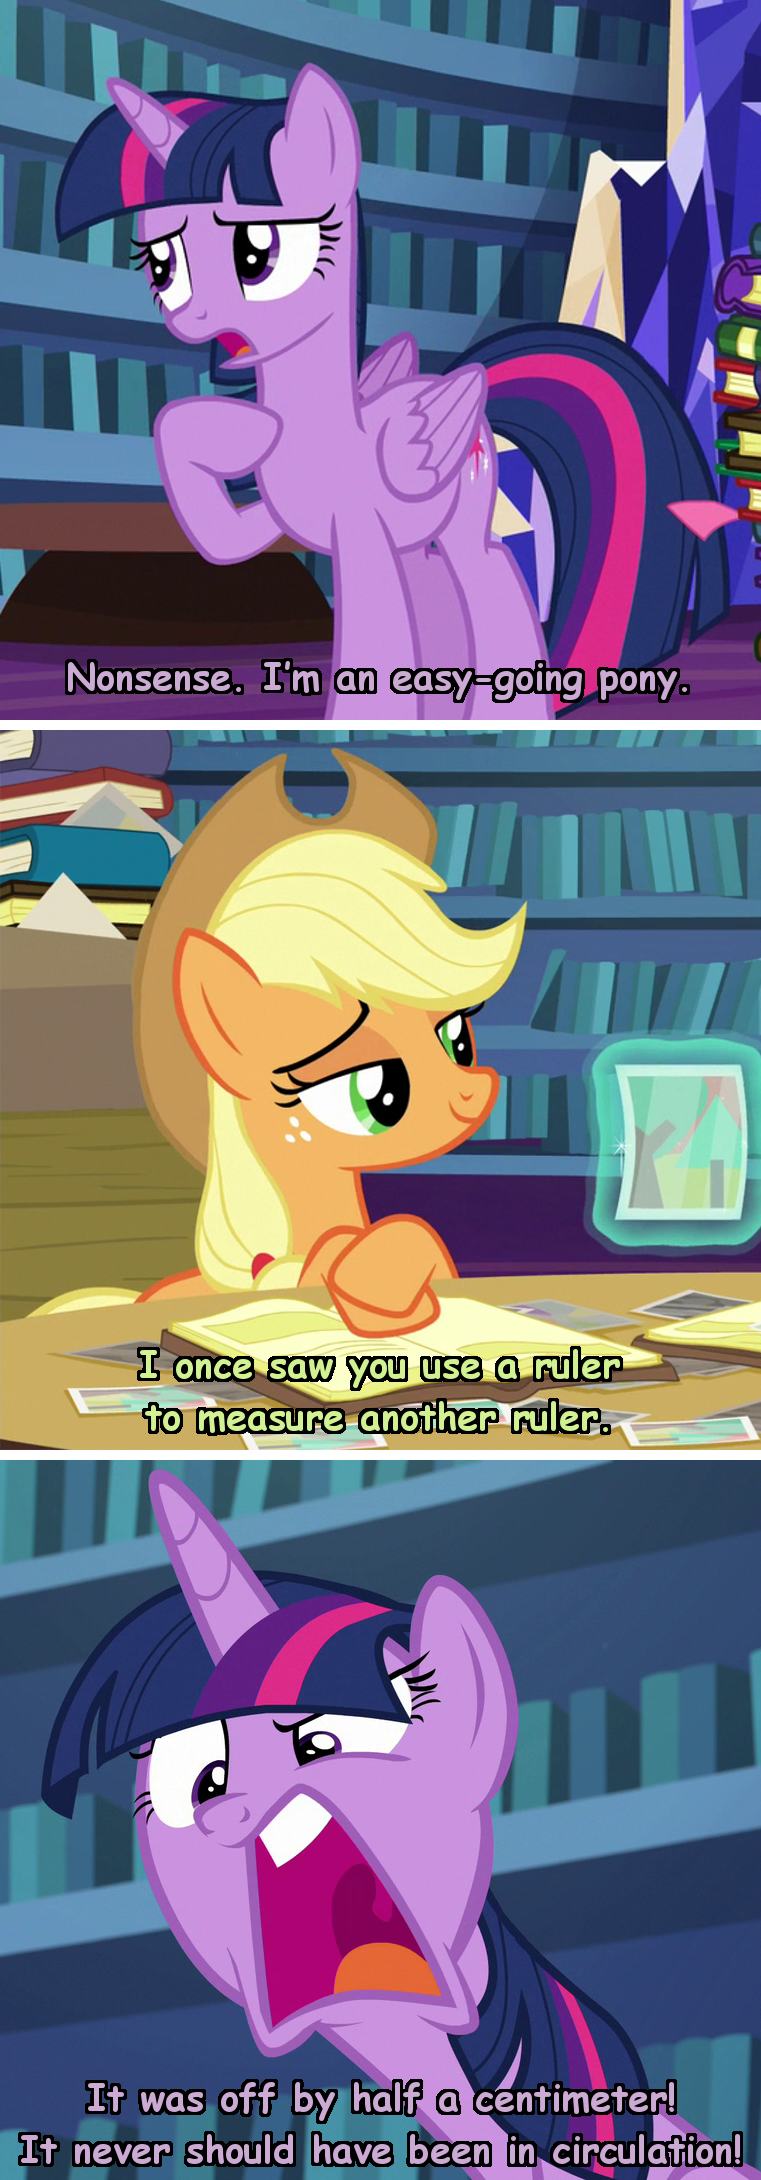 applejack brooklyn nine-nine incorrect my little pony quotes twilight sparkle screencap every little thing she does comic - 9253920768